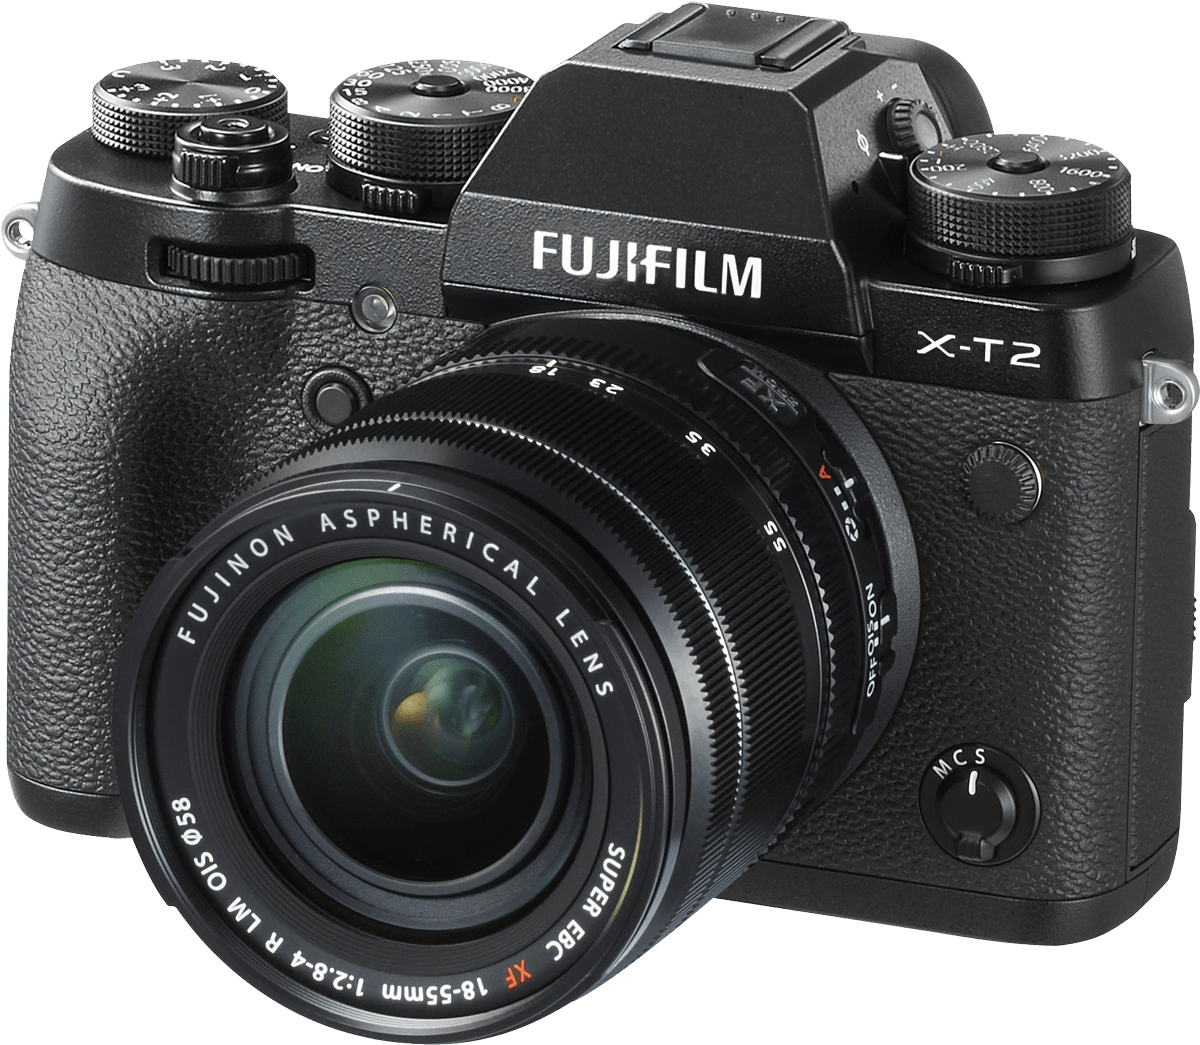 Fuji Fuji Buying Options For Fujifilm X T2 Digital Photography Review